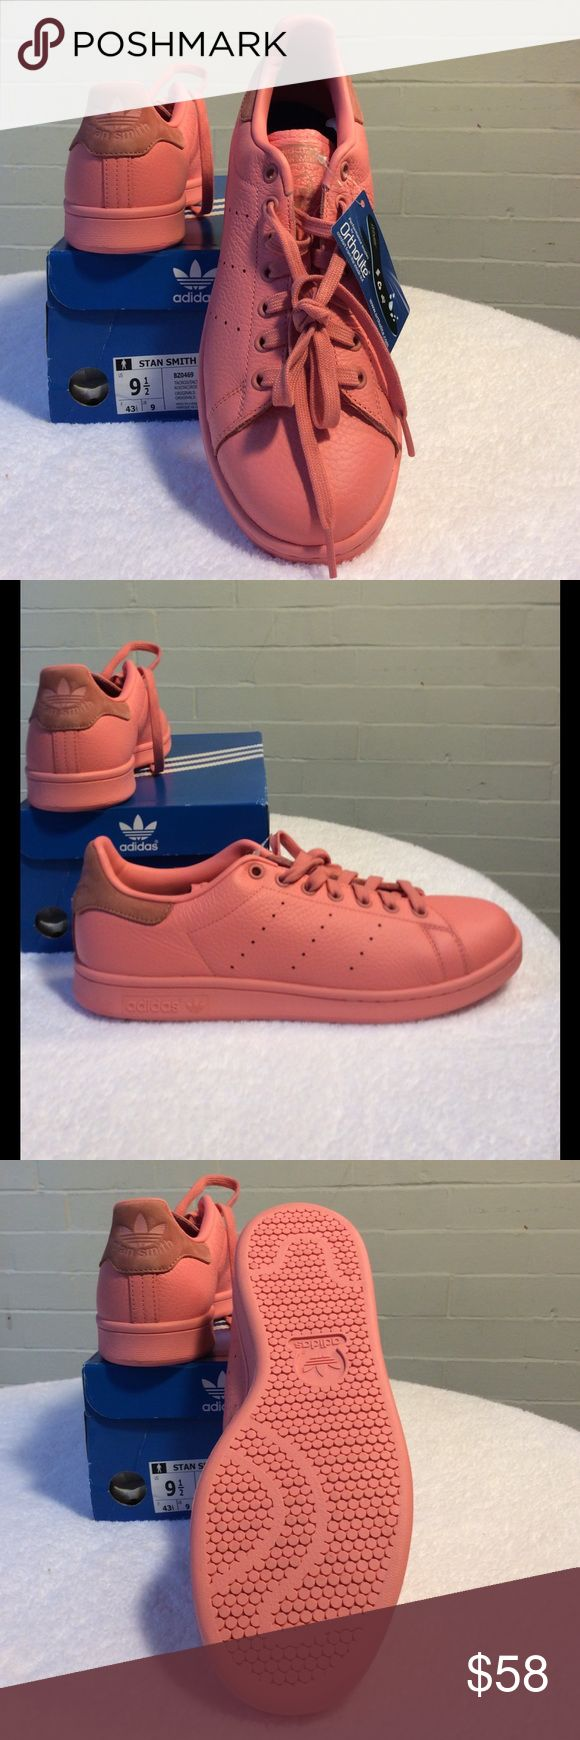 """Adidas Stan Smith pink leather court shoes Pink court shoes with light brown accent at heel and tongue.  """"Adidas"""" sign and """"Stan Smith"""" on top of heel.  Adidas is written out on tongue with the classic Stan Smith image. Pink sole.  Unisex Adidas sizing 9.5 men's, 10.5 women's Adidas Shoes Athletic Shoes"""